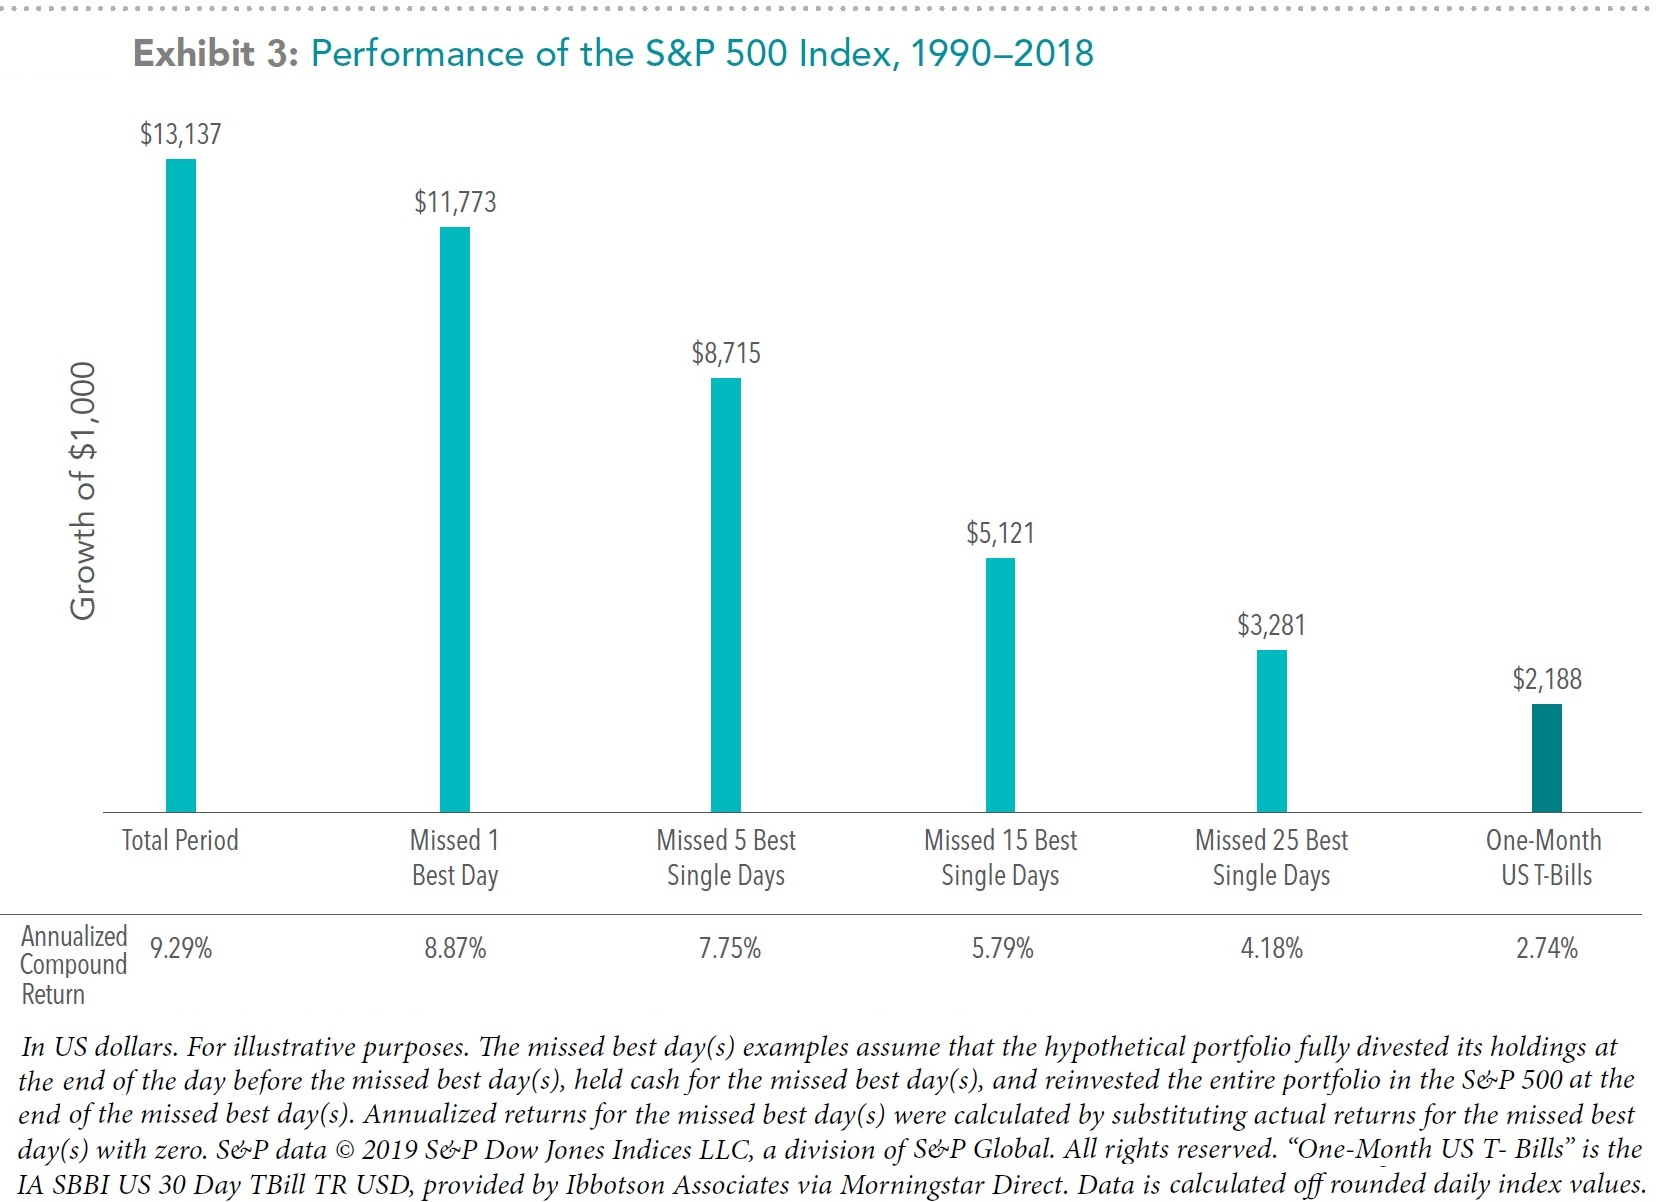 Performance of the S&P 500 Index if Best Days Missed, 1990-2018